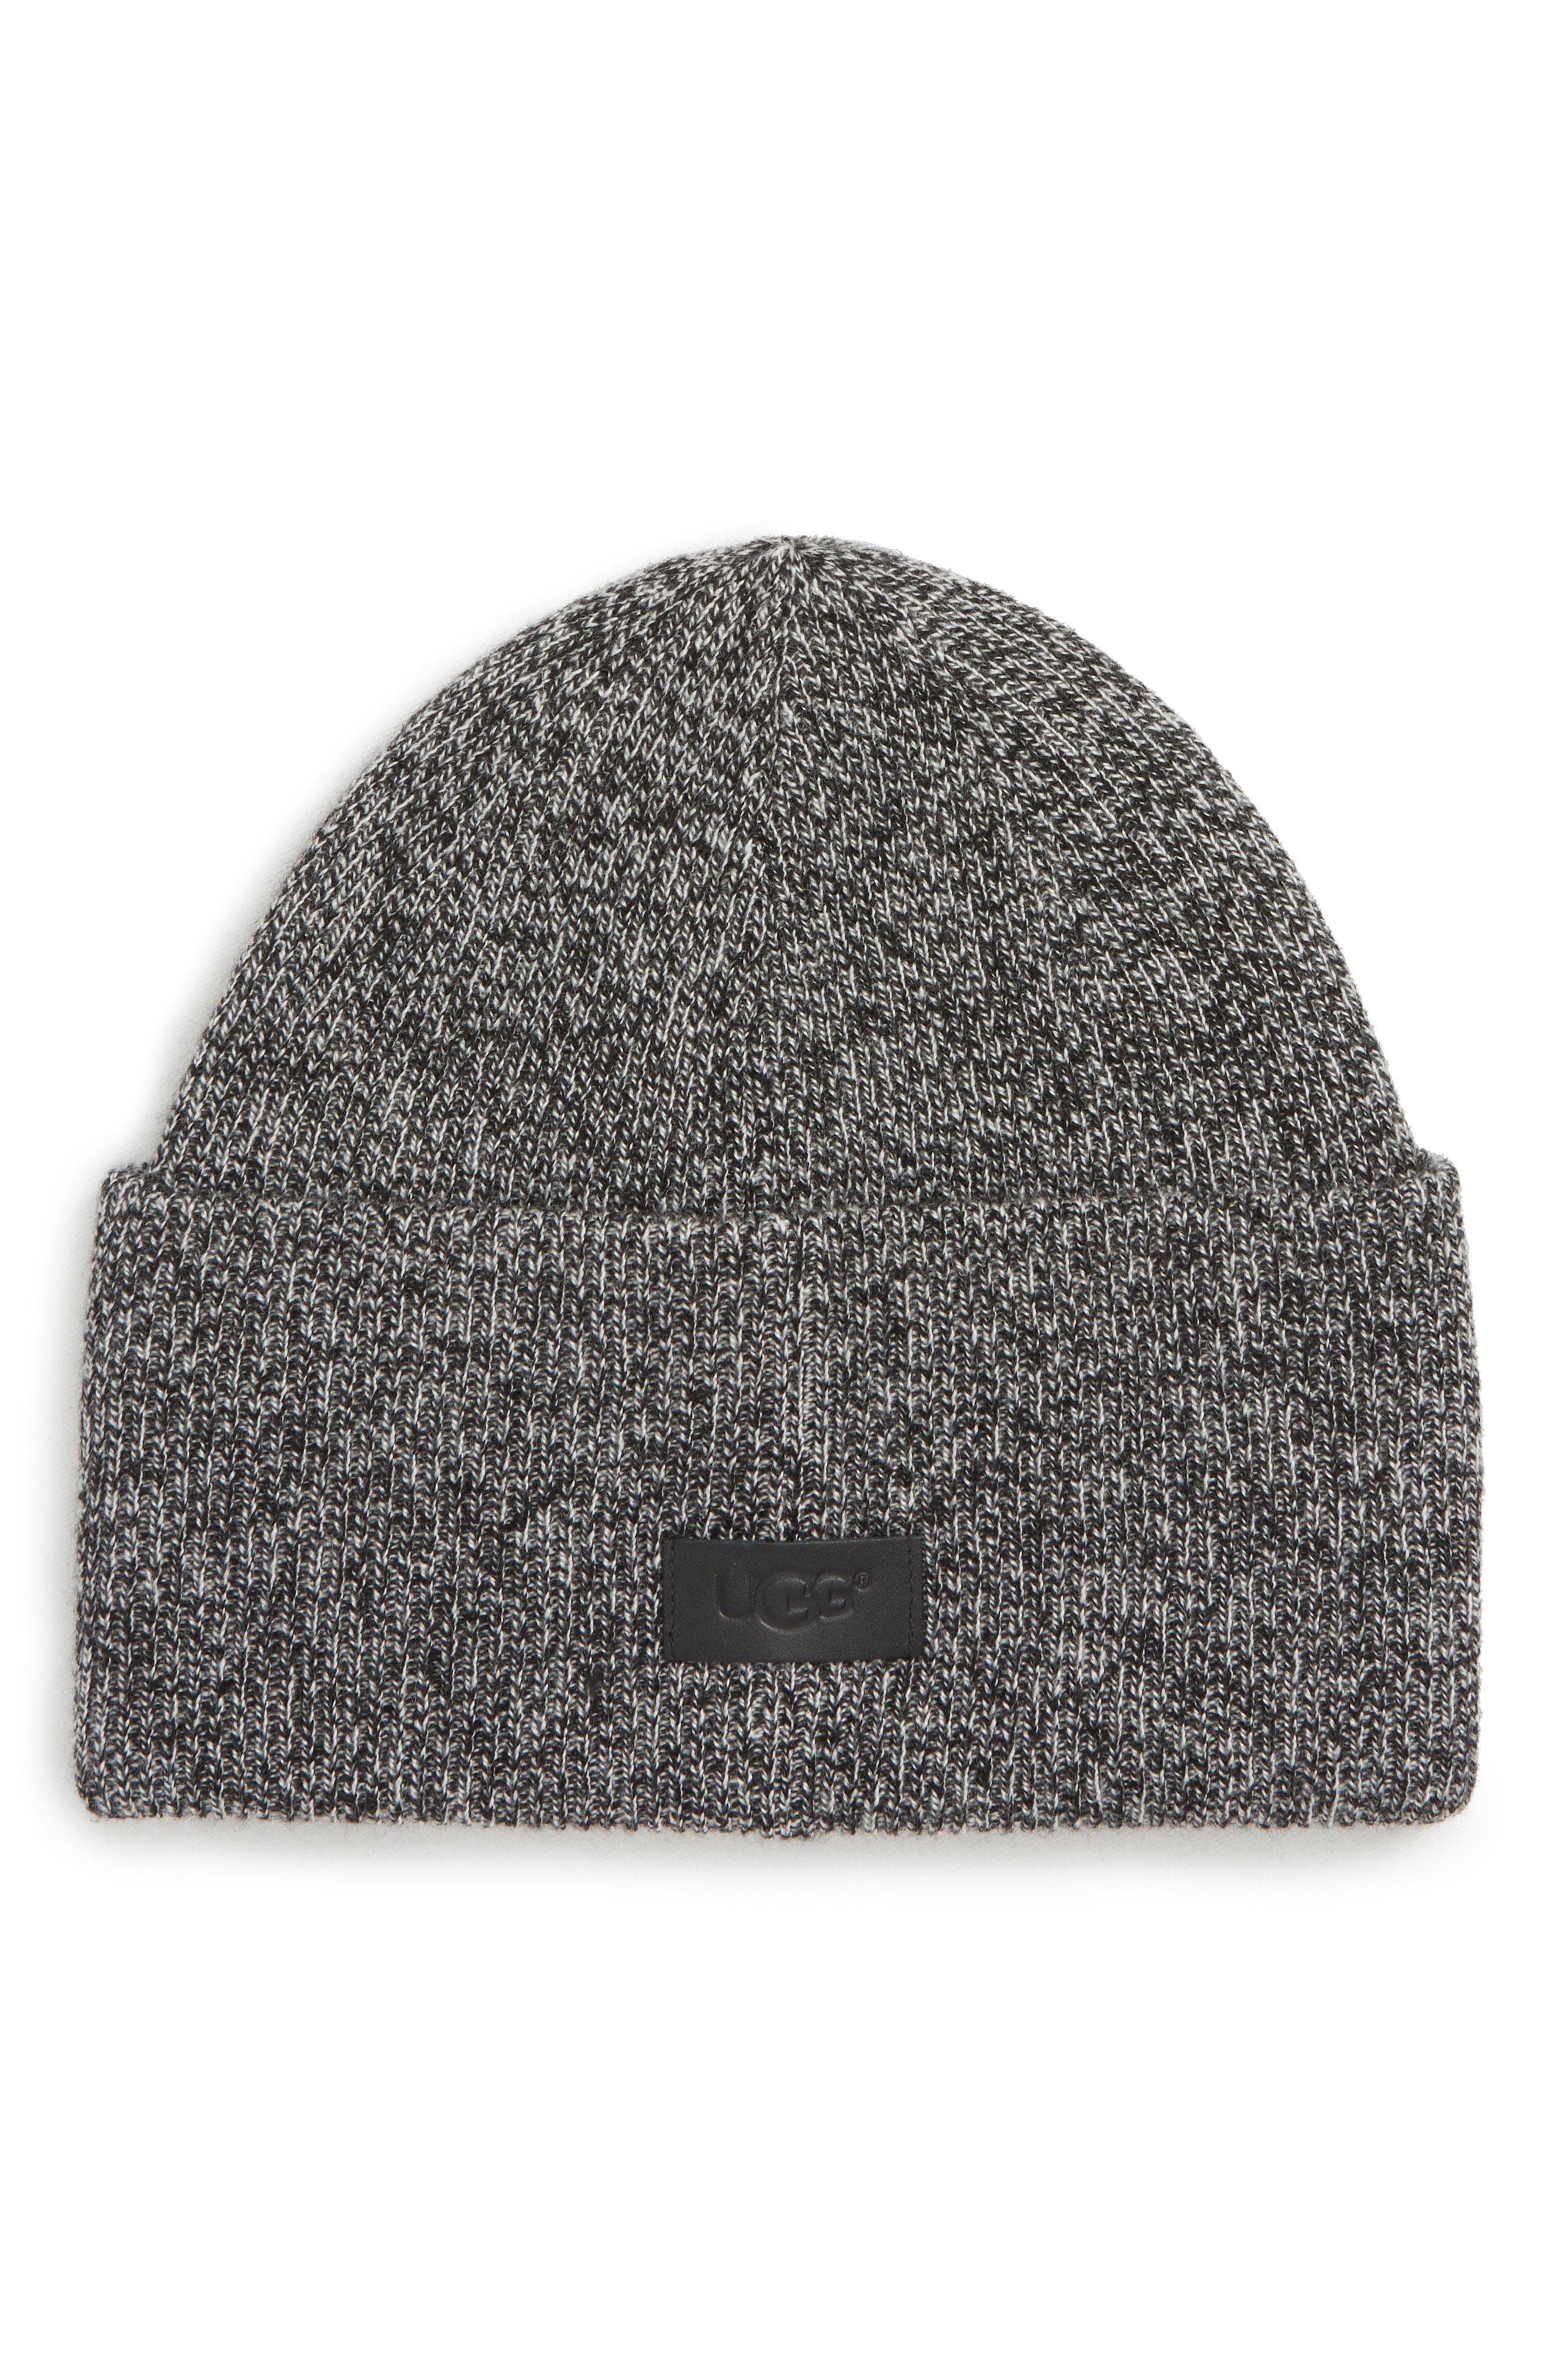 2eb081708 Lyst - UGG Ugg High Cuff Knit Wool & Cashmere Beanie in Gray for Men